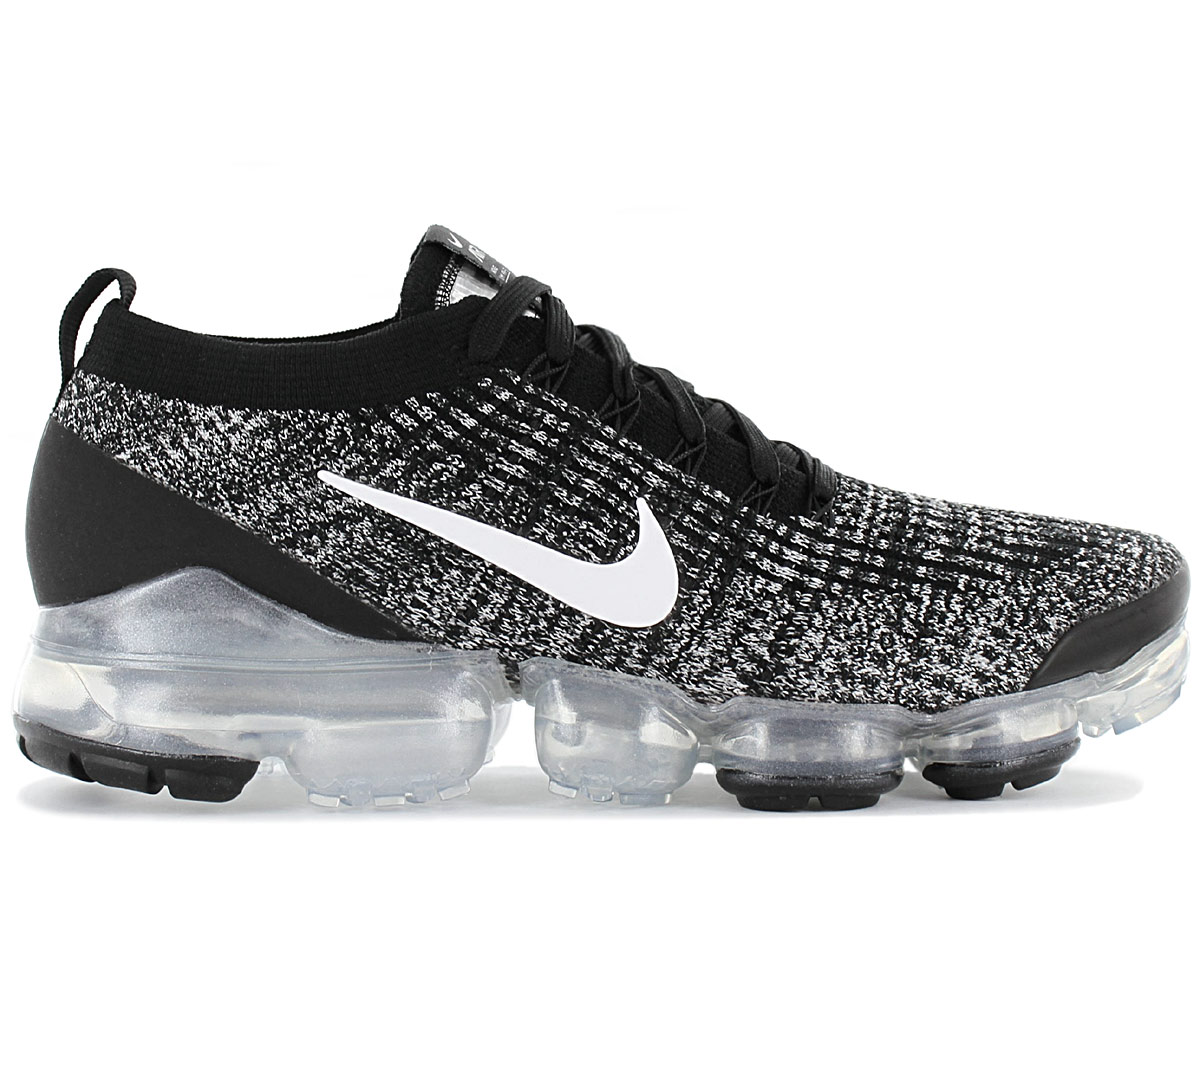 Details about Nike Air Vapormax Flyknit 3 Mens Trainer AJ6900 002 BlackSilver schuhe NEW show original title